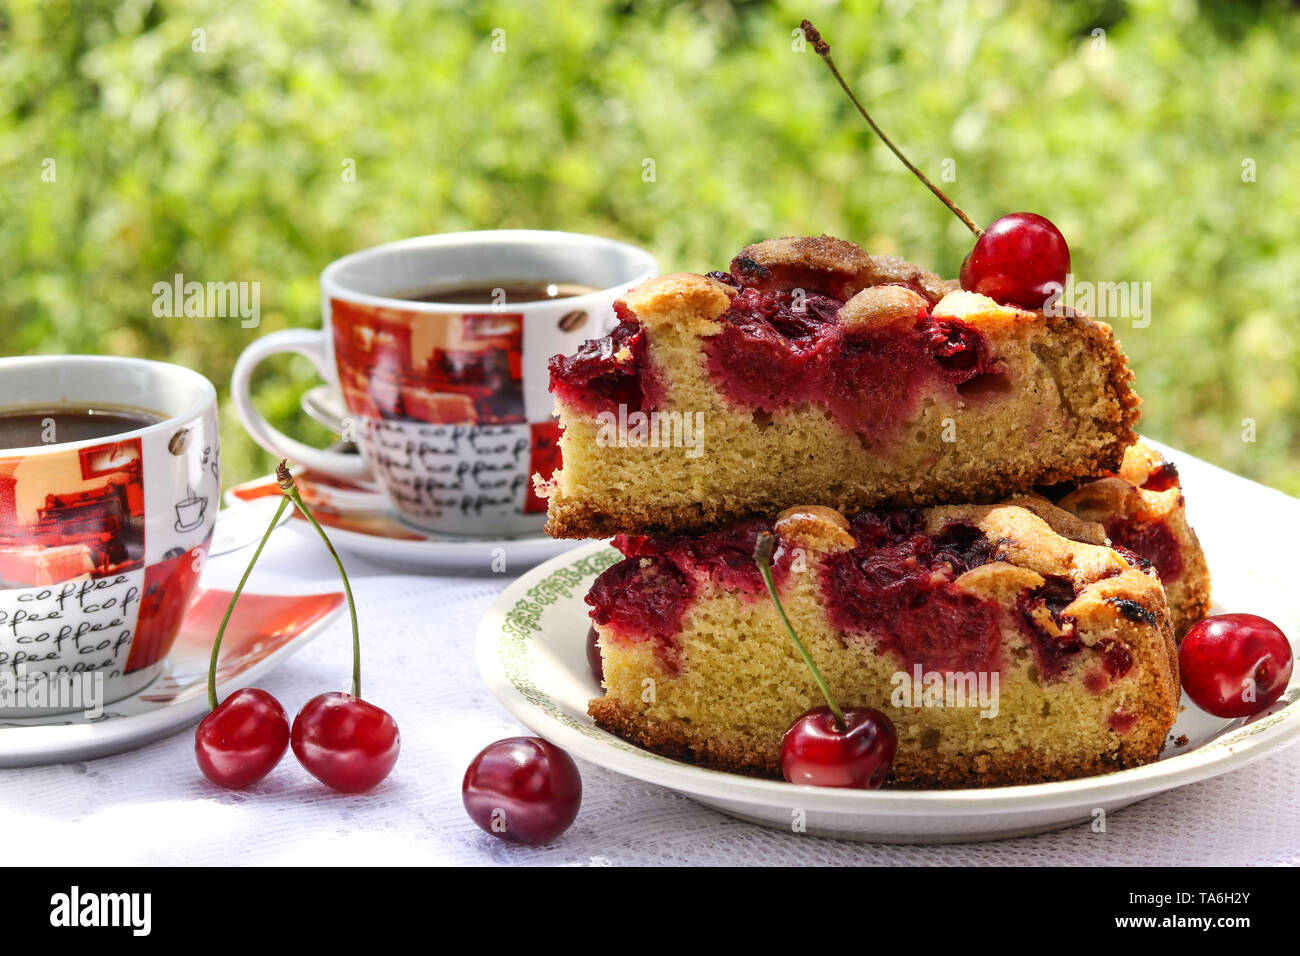 Pieces of a pie with a cherry and two cups of coffee on a table outdoors, horizontal photo - Stock Image